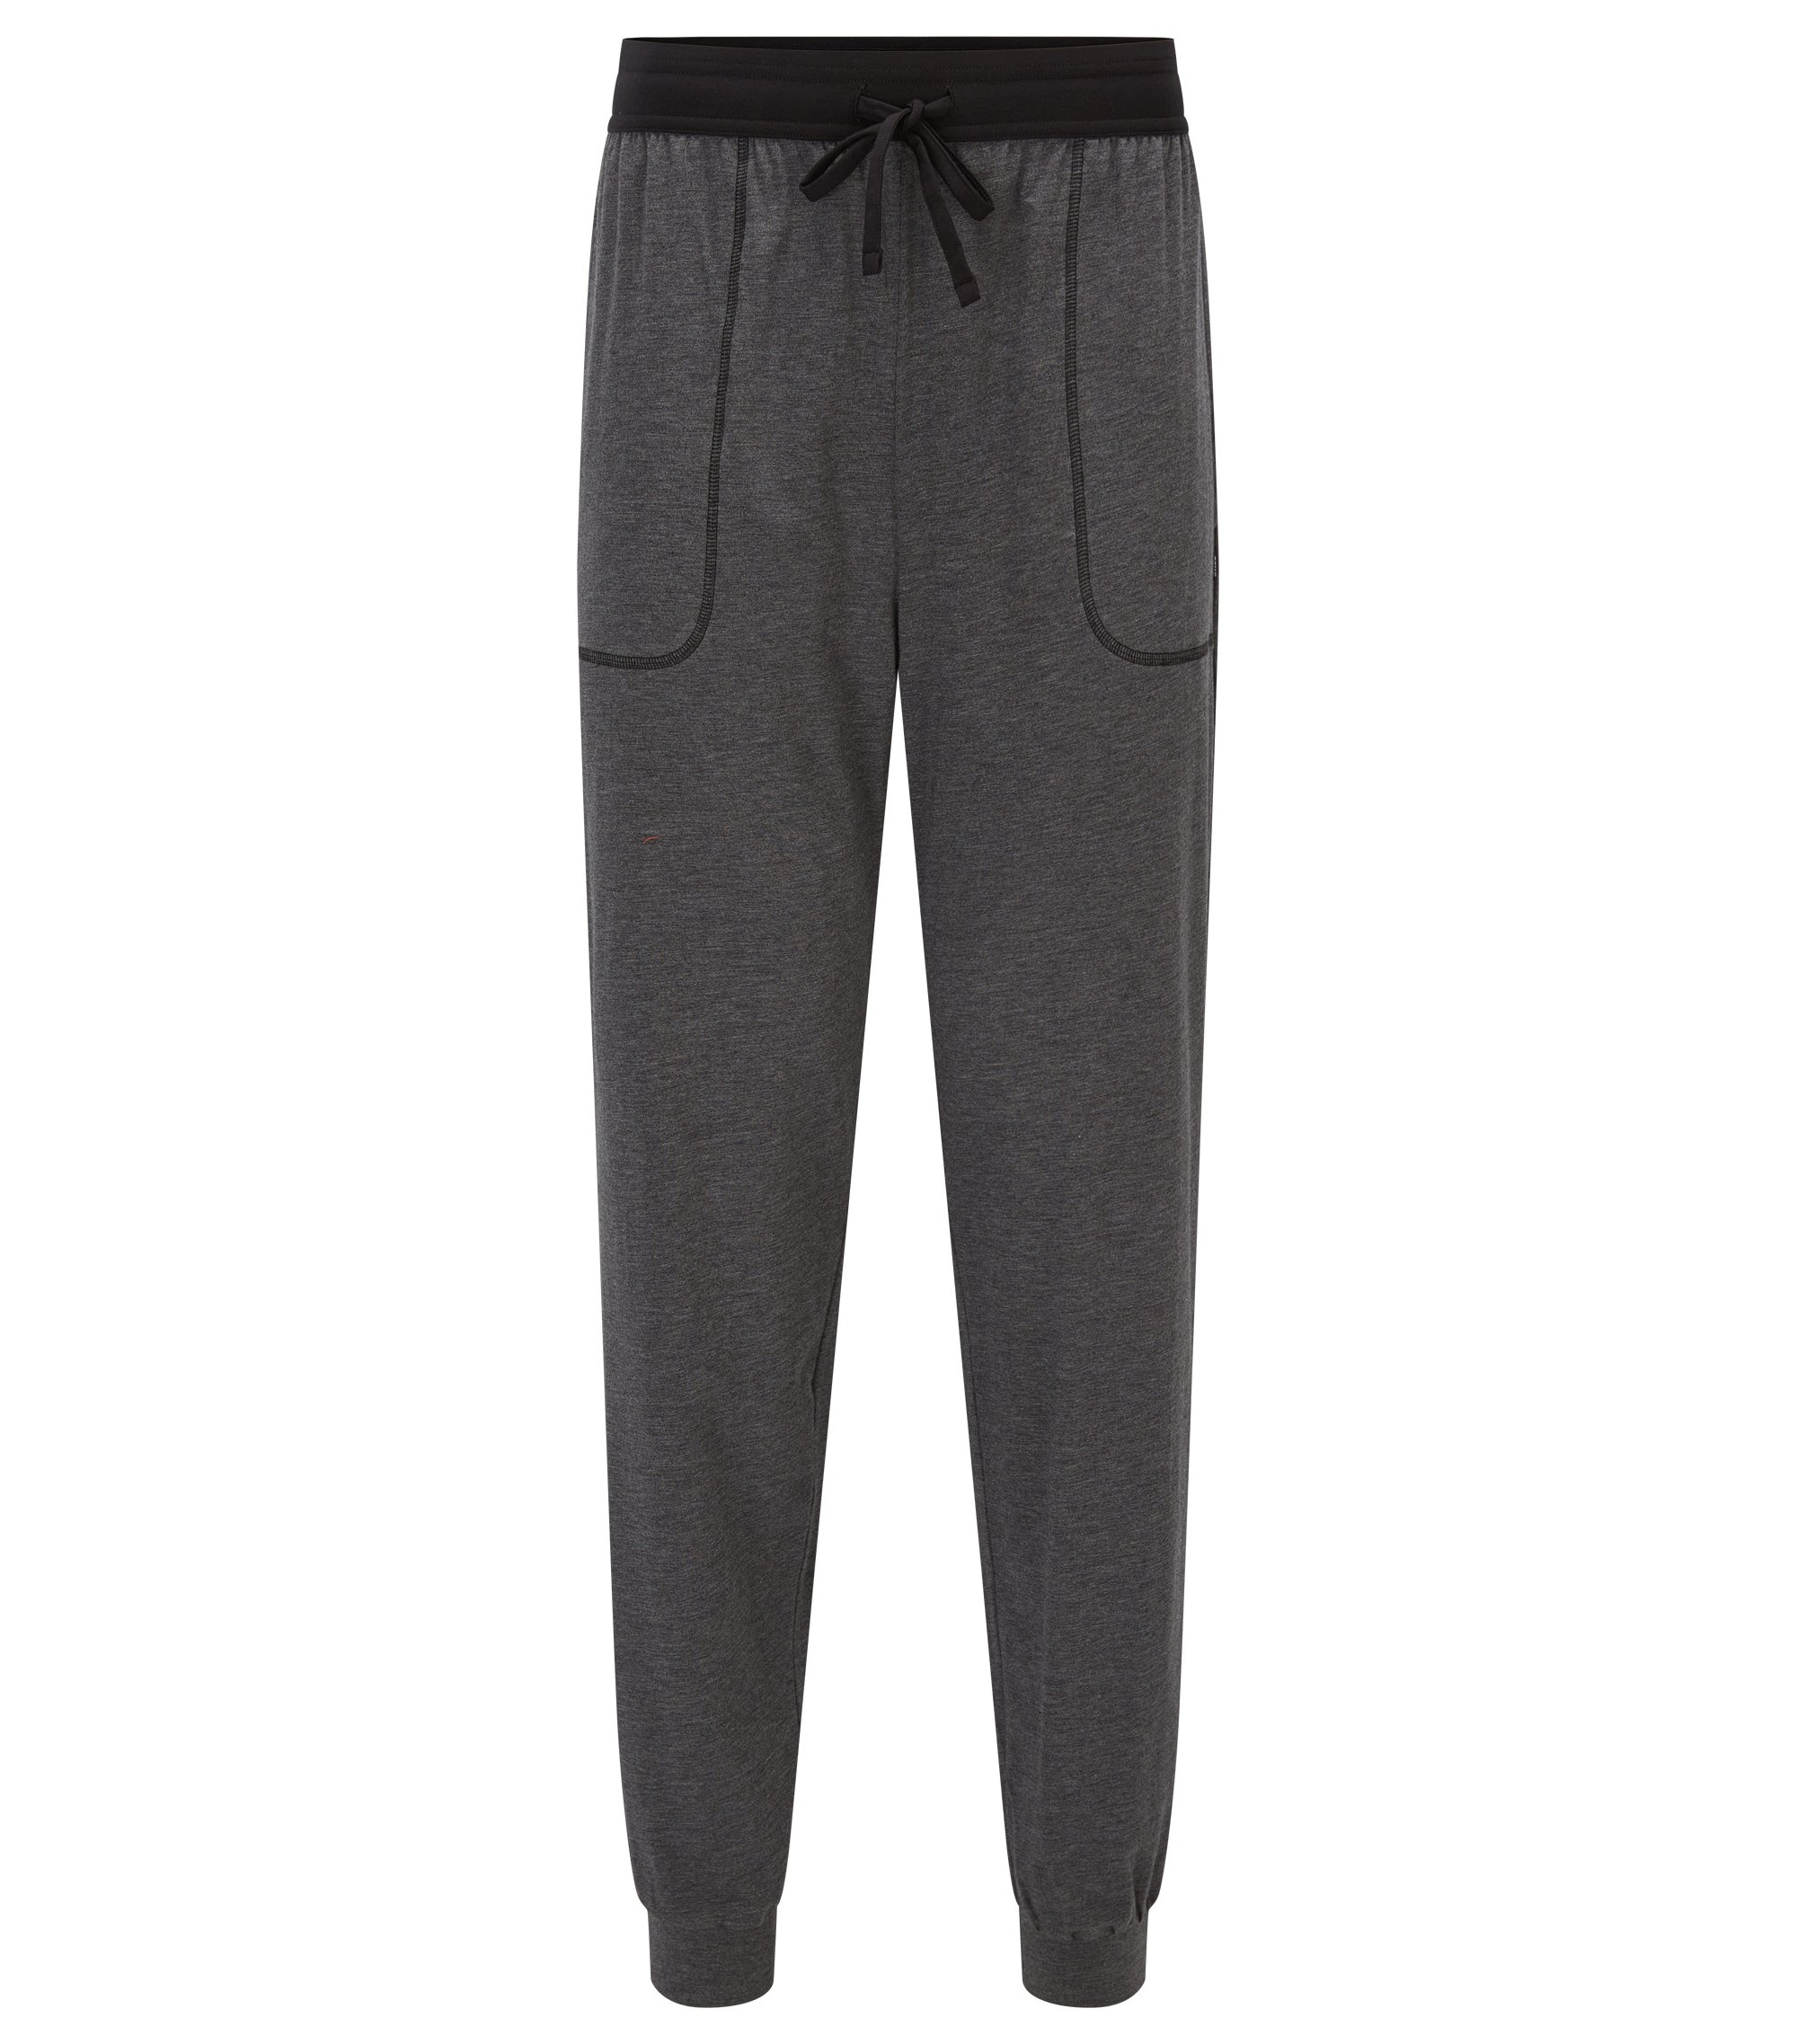 Pyjama trousers in cotton-blend jersey, Anthracite